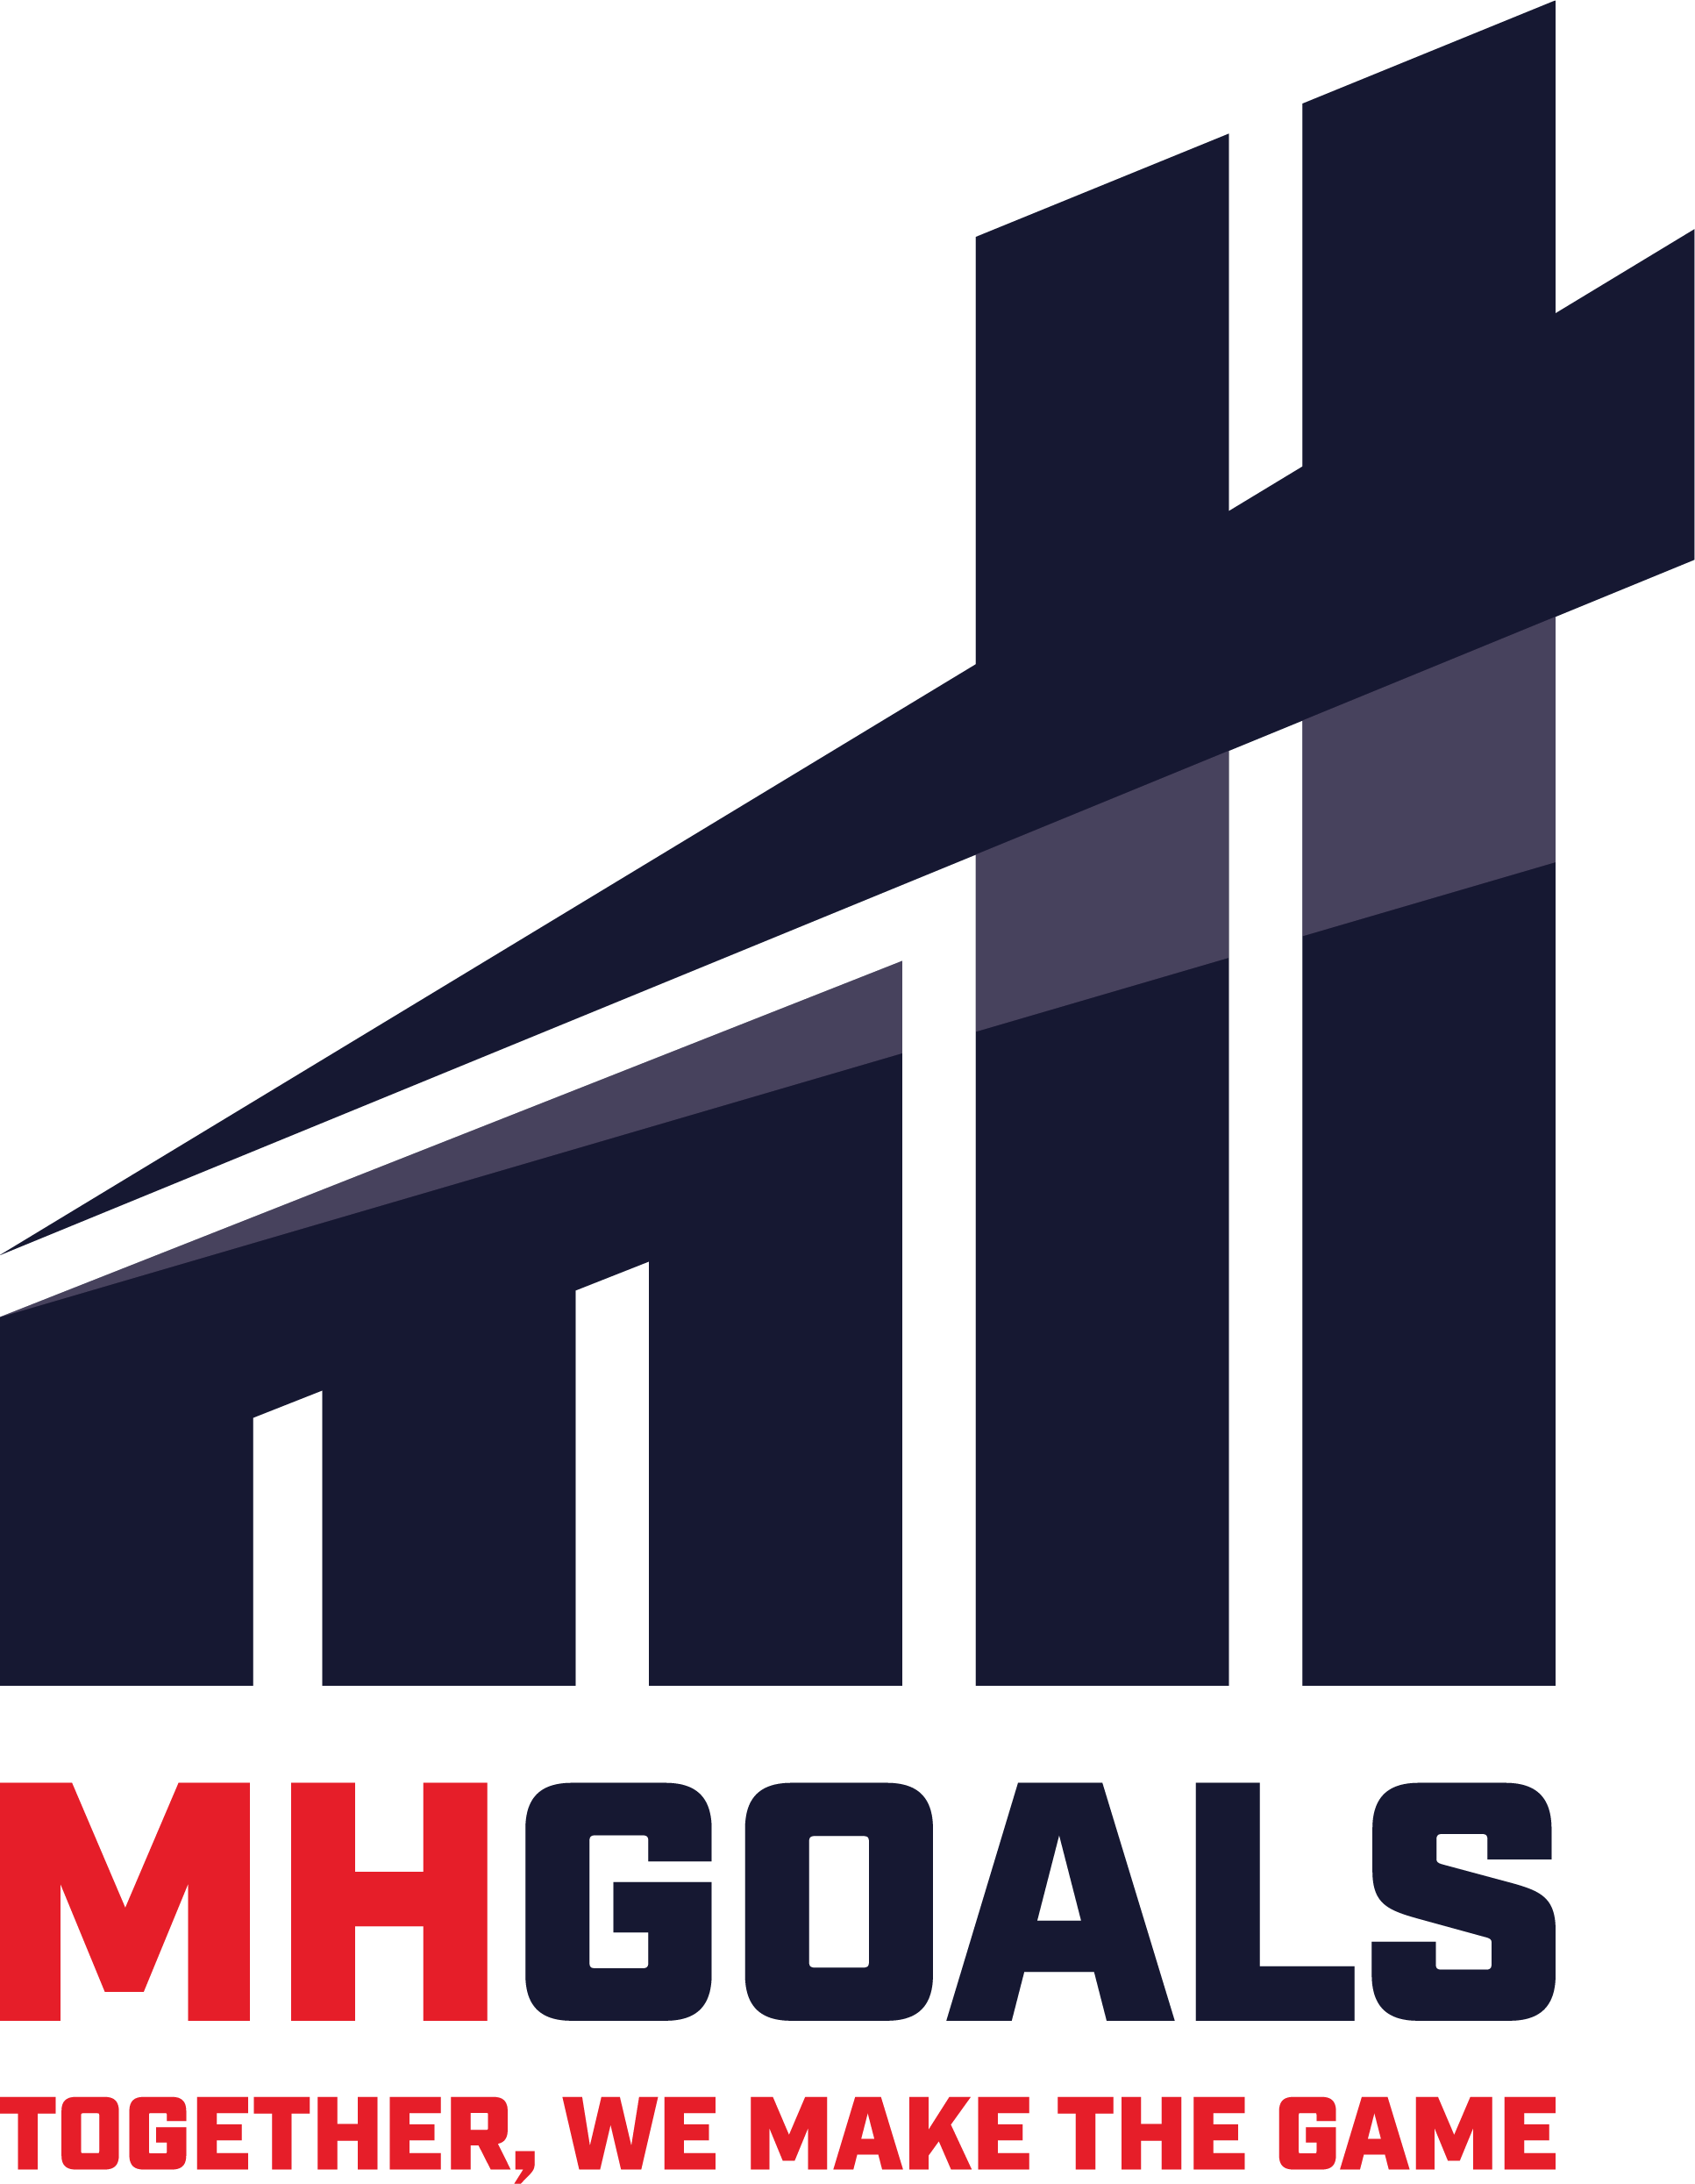 Link to https://www.mhgoals.com/